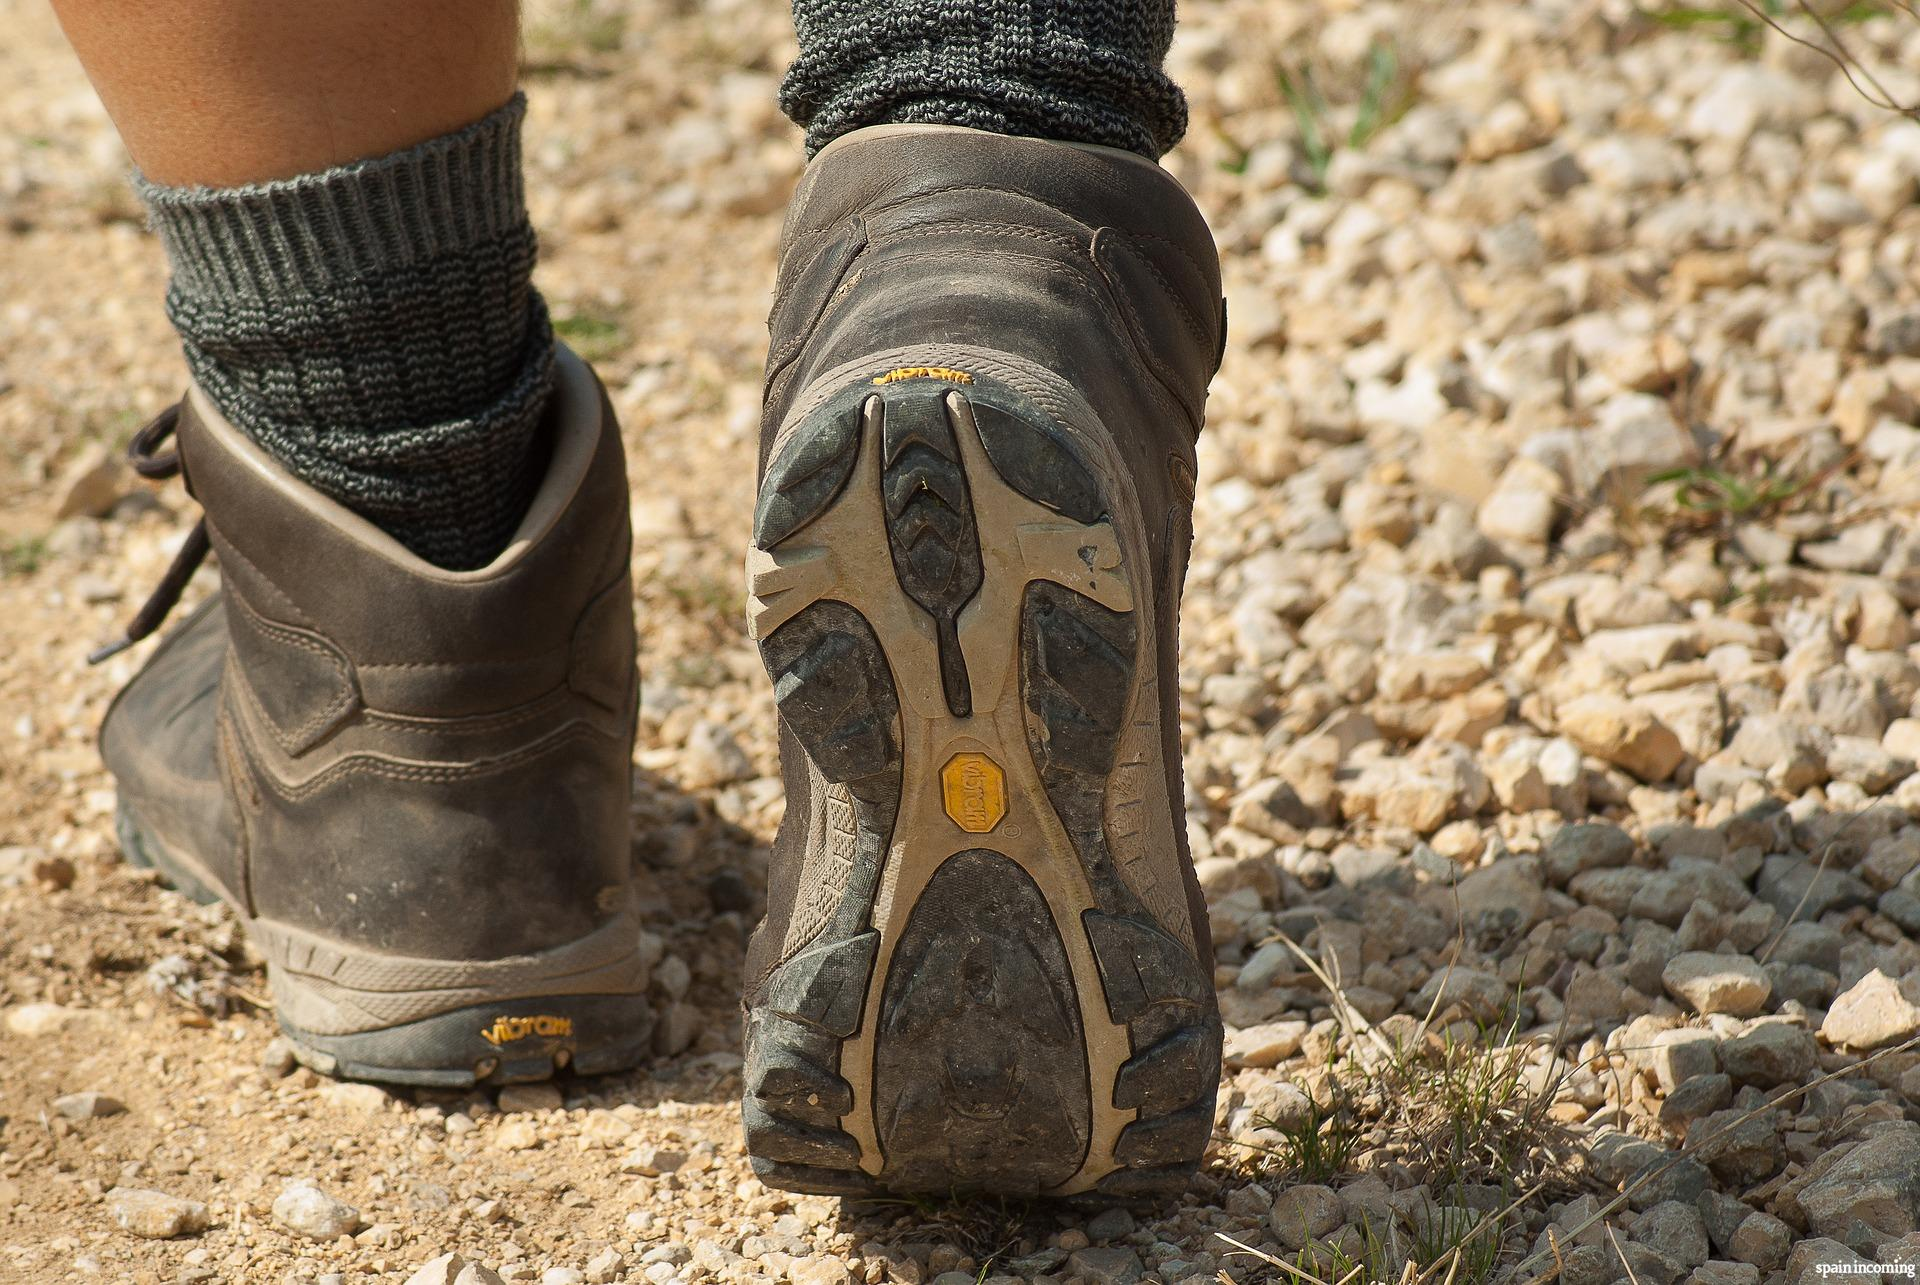 Camino de Santiago tips: feet care